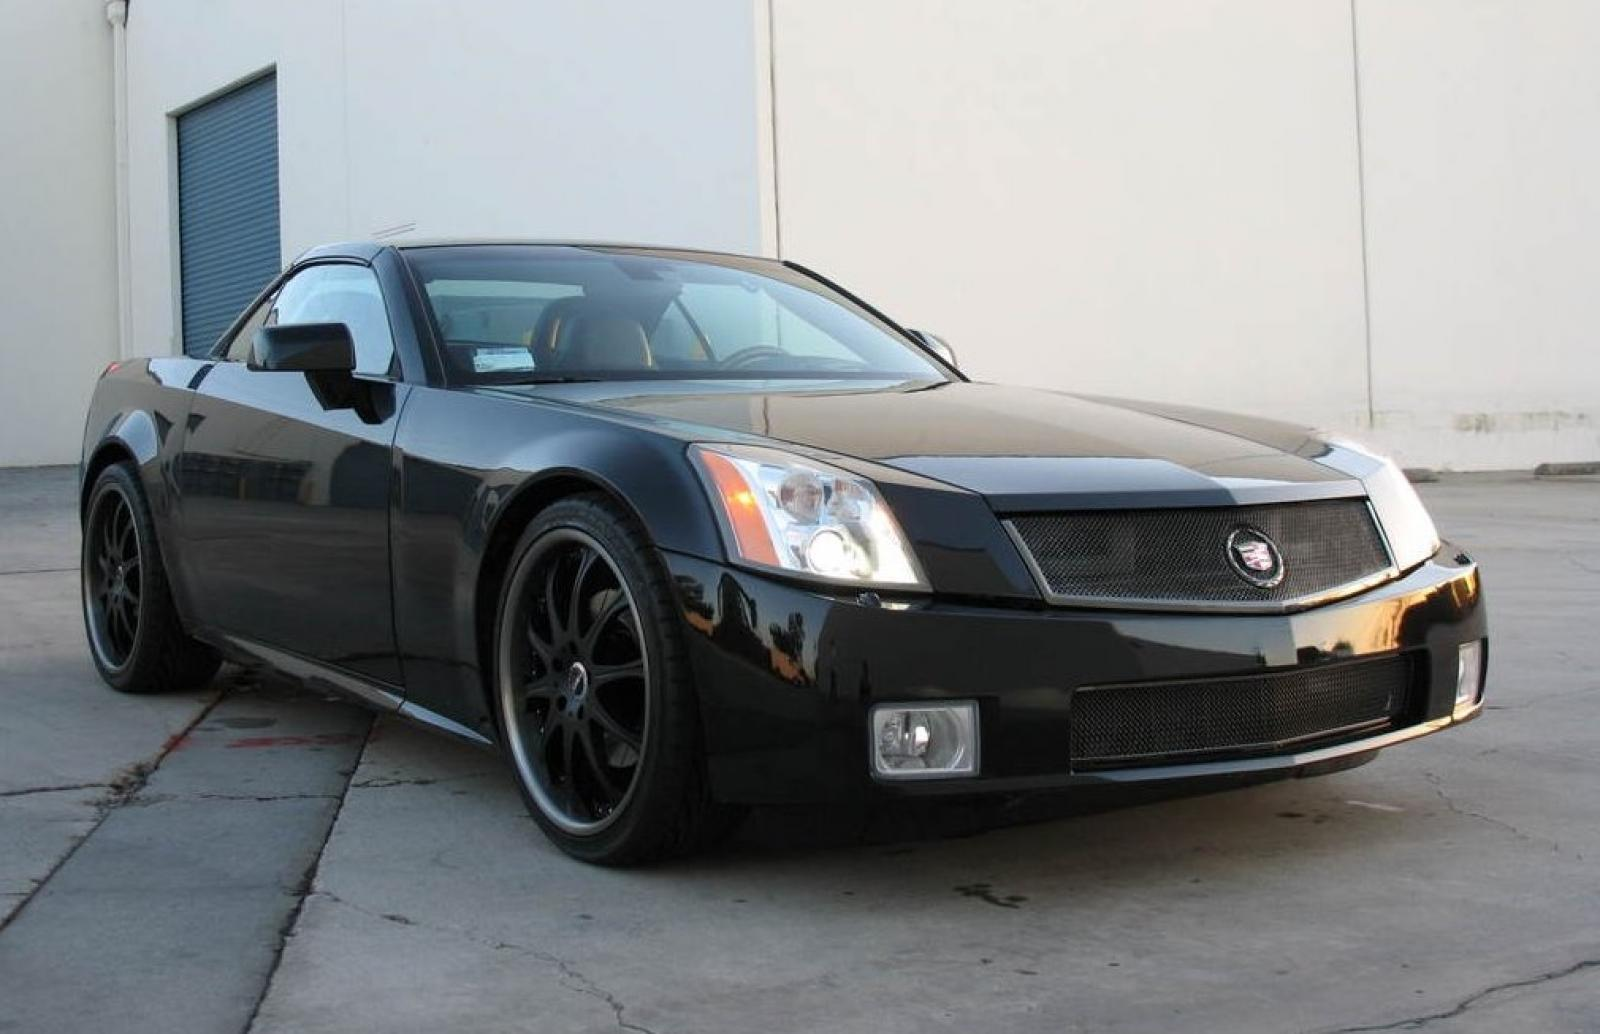 2009 Cadillac Xlr V Information And Photos Zombiedrive 2007 Wiring Harness 800 1024 1280 1600 Origin